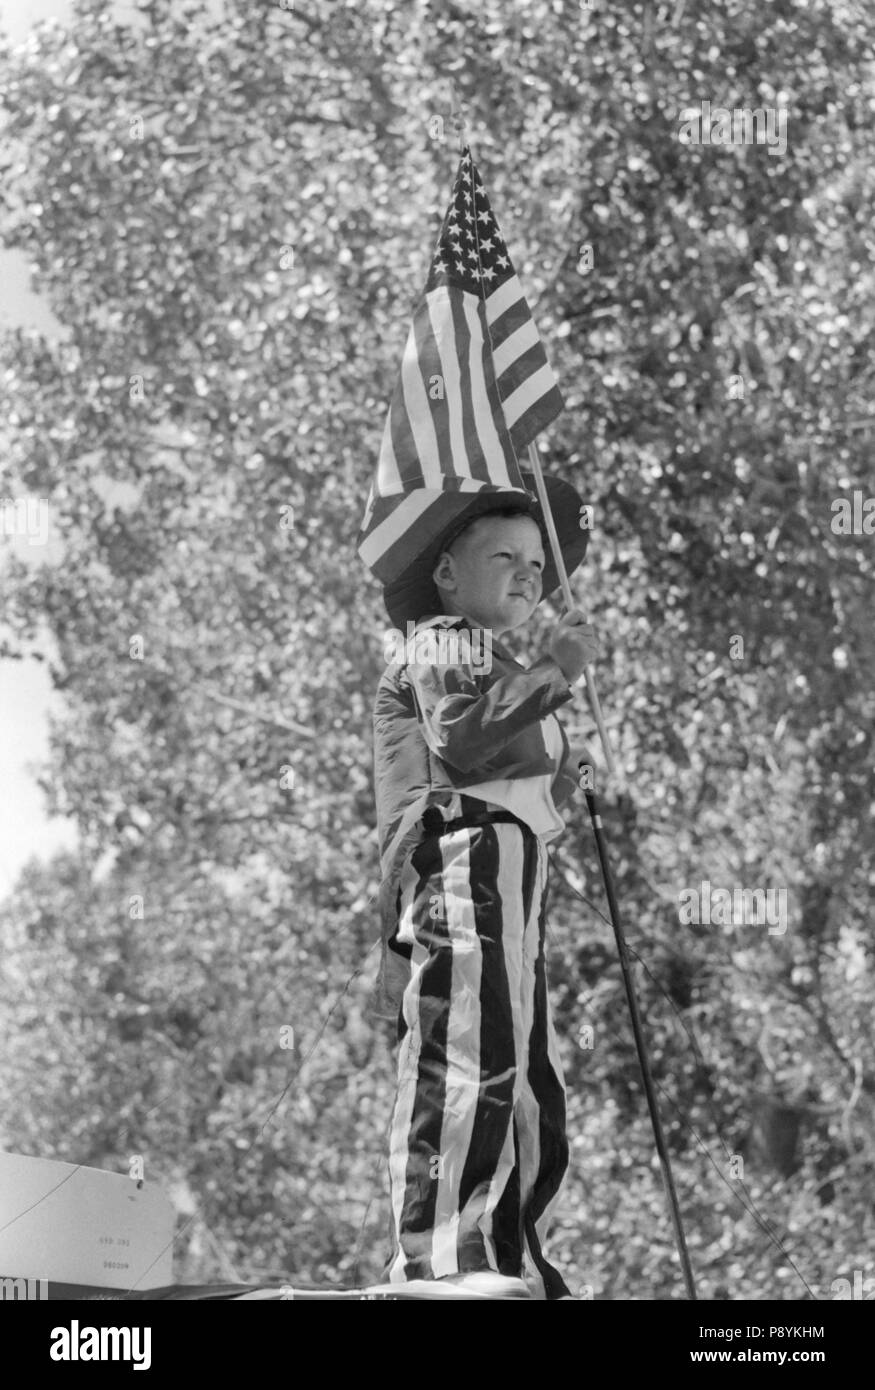 Young Boy in Patriotic Costume Waving American Flag during Fourth of July Parade, Vale, Oregon, USA, Russell Lee, Farm Security Administration, July 1941 - Stock Image